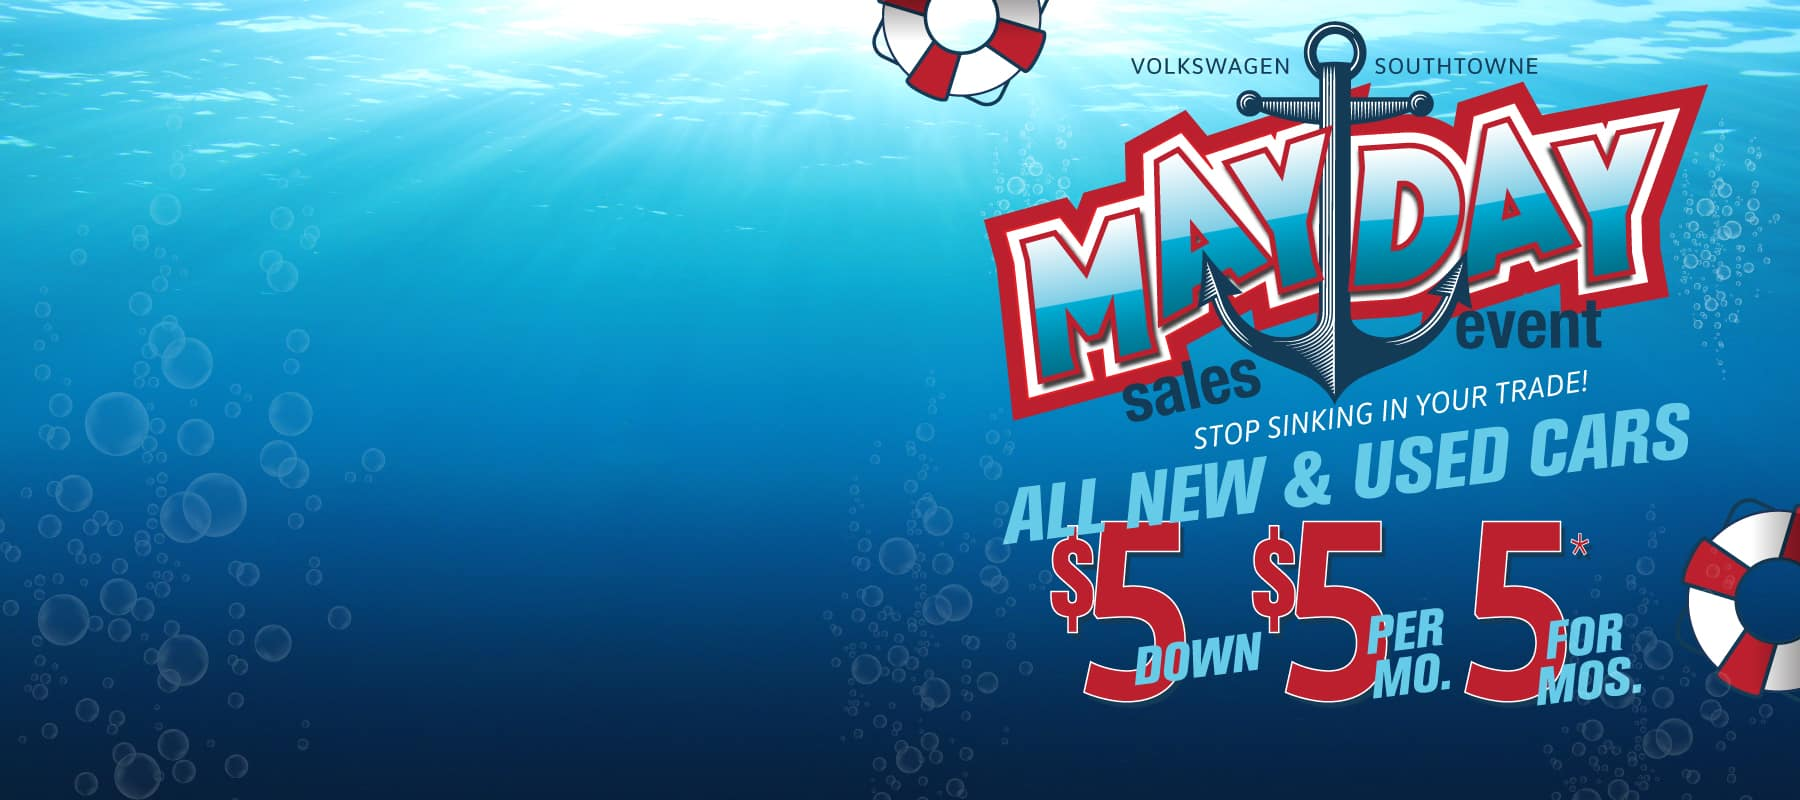 Don't miss our famous 555 MAYDAY brought back for a limited time!